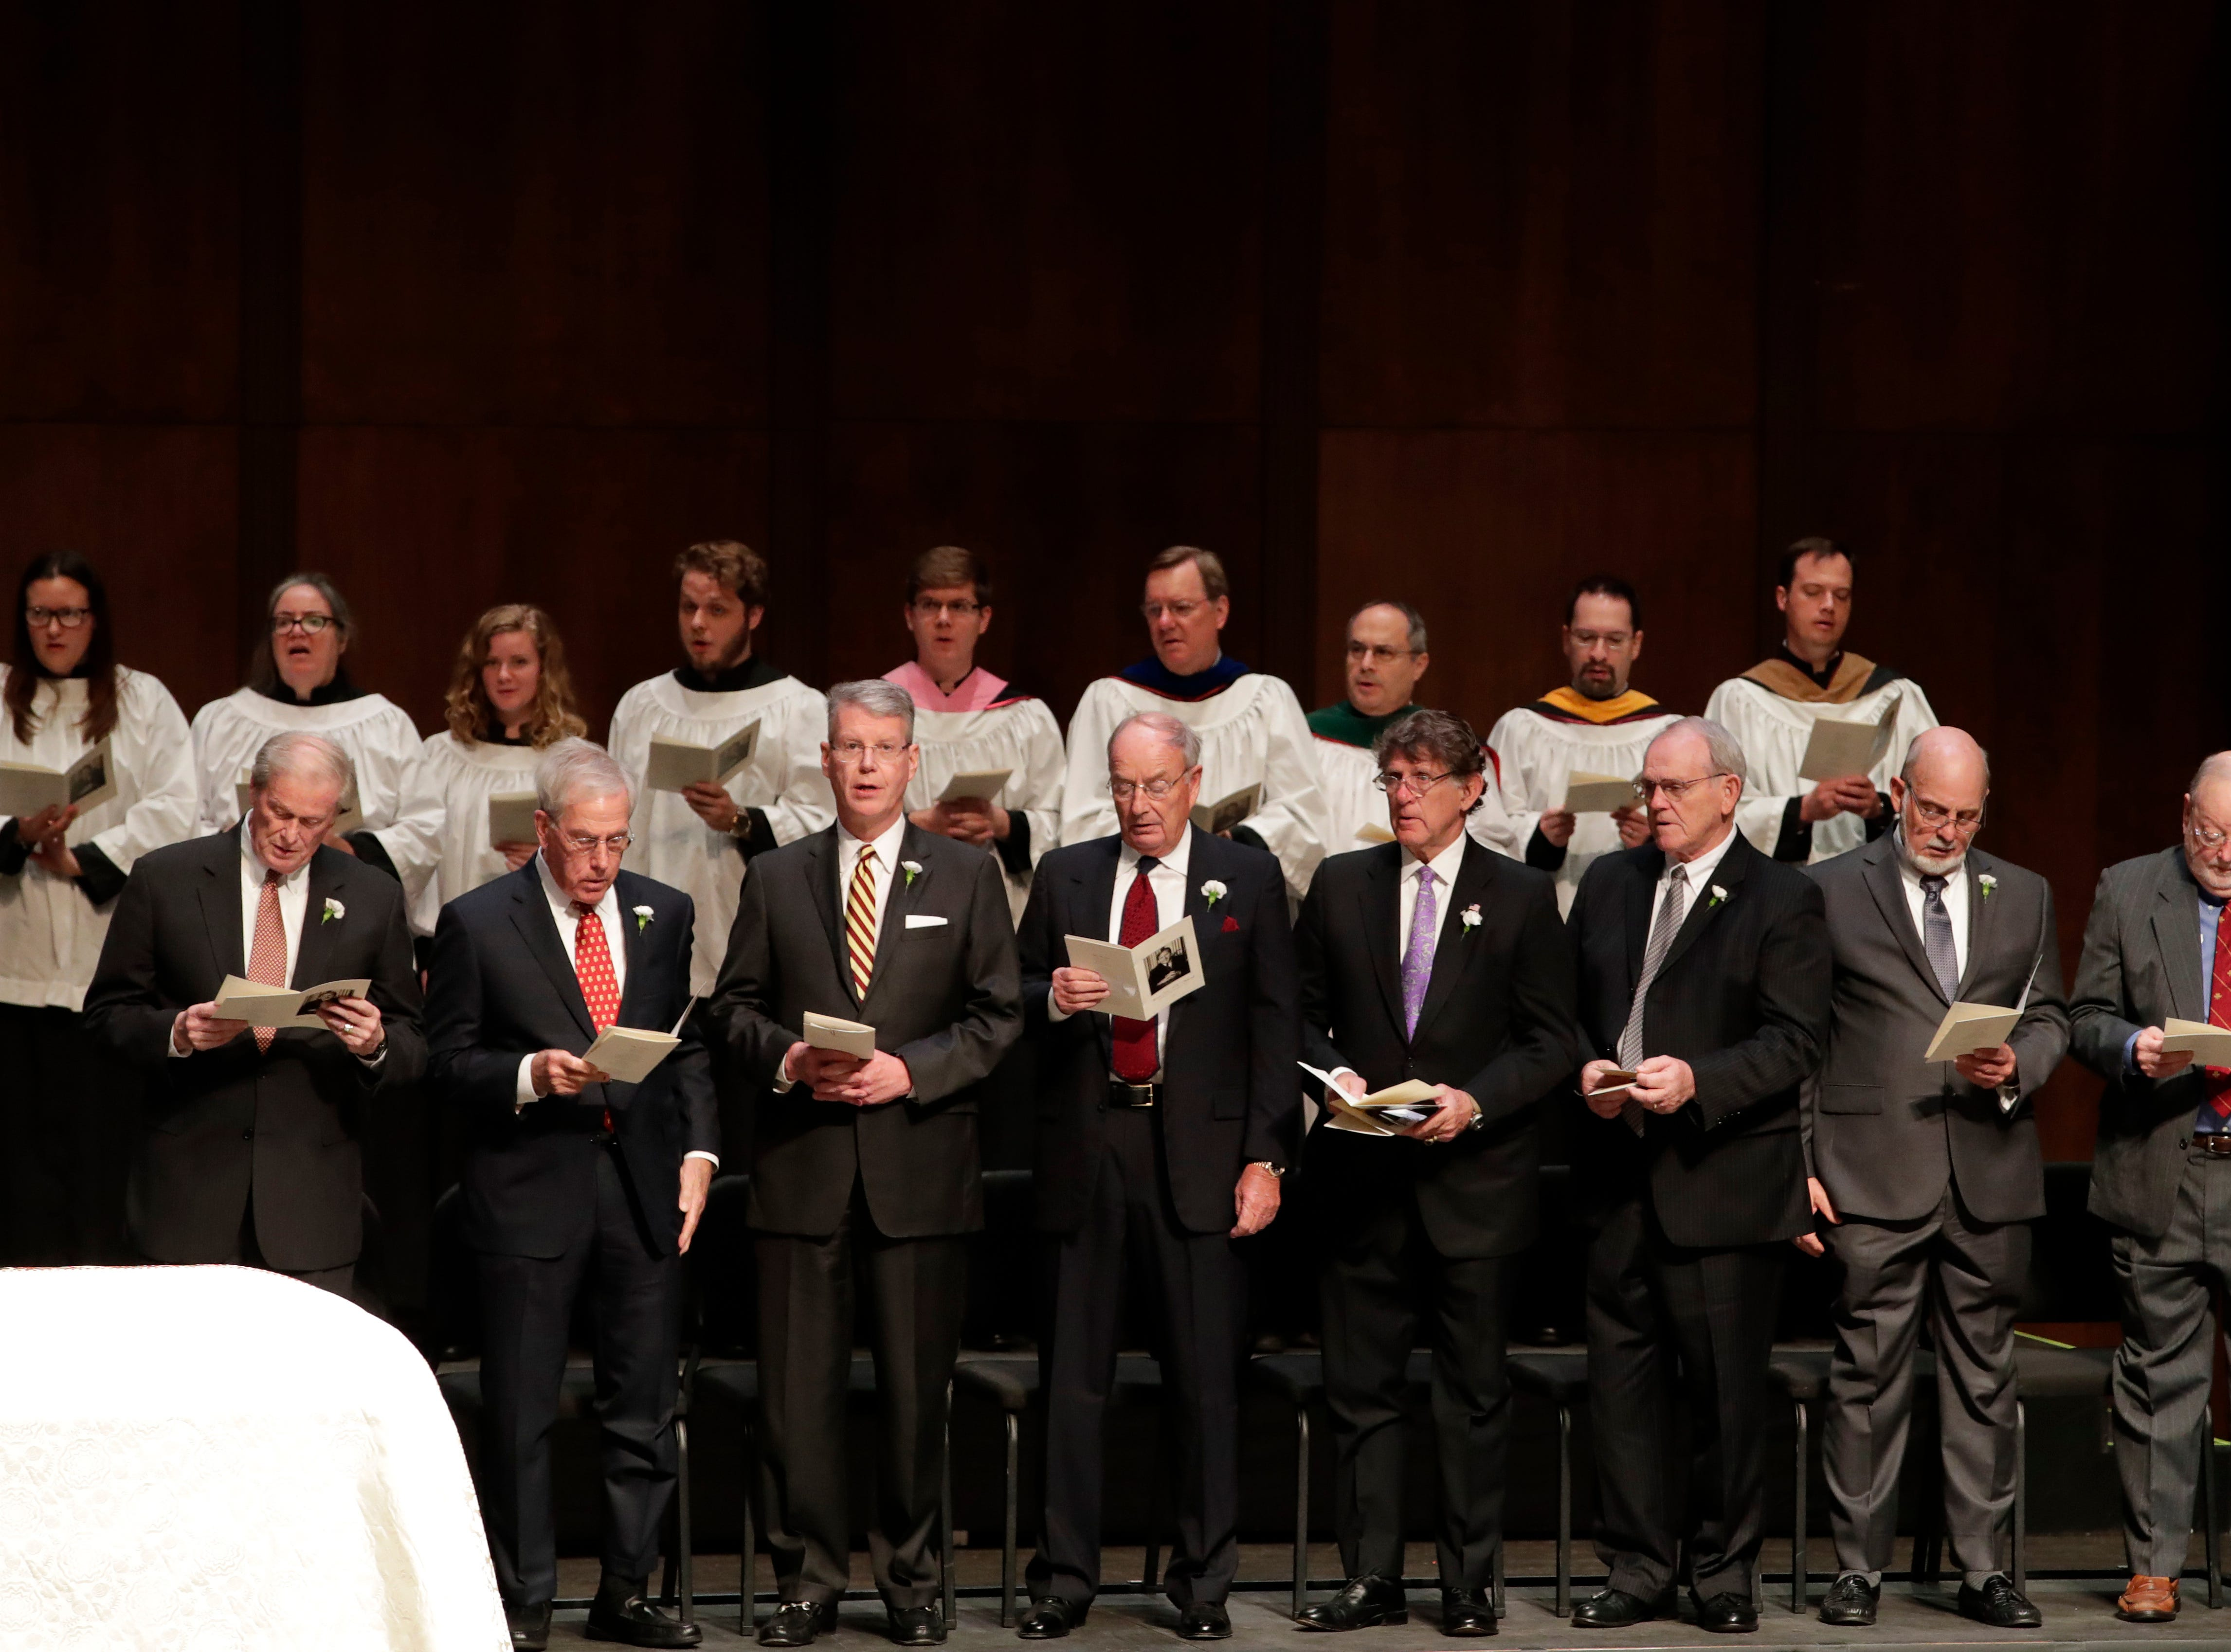 Pall bearers sing along during a funeral service for Florida State University President Emeritus T.K. Wetherell held at Ruby Diamond Concert Hall Friday, Dec. 21, 2018.